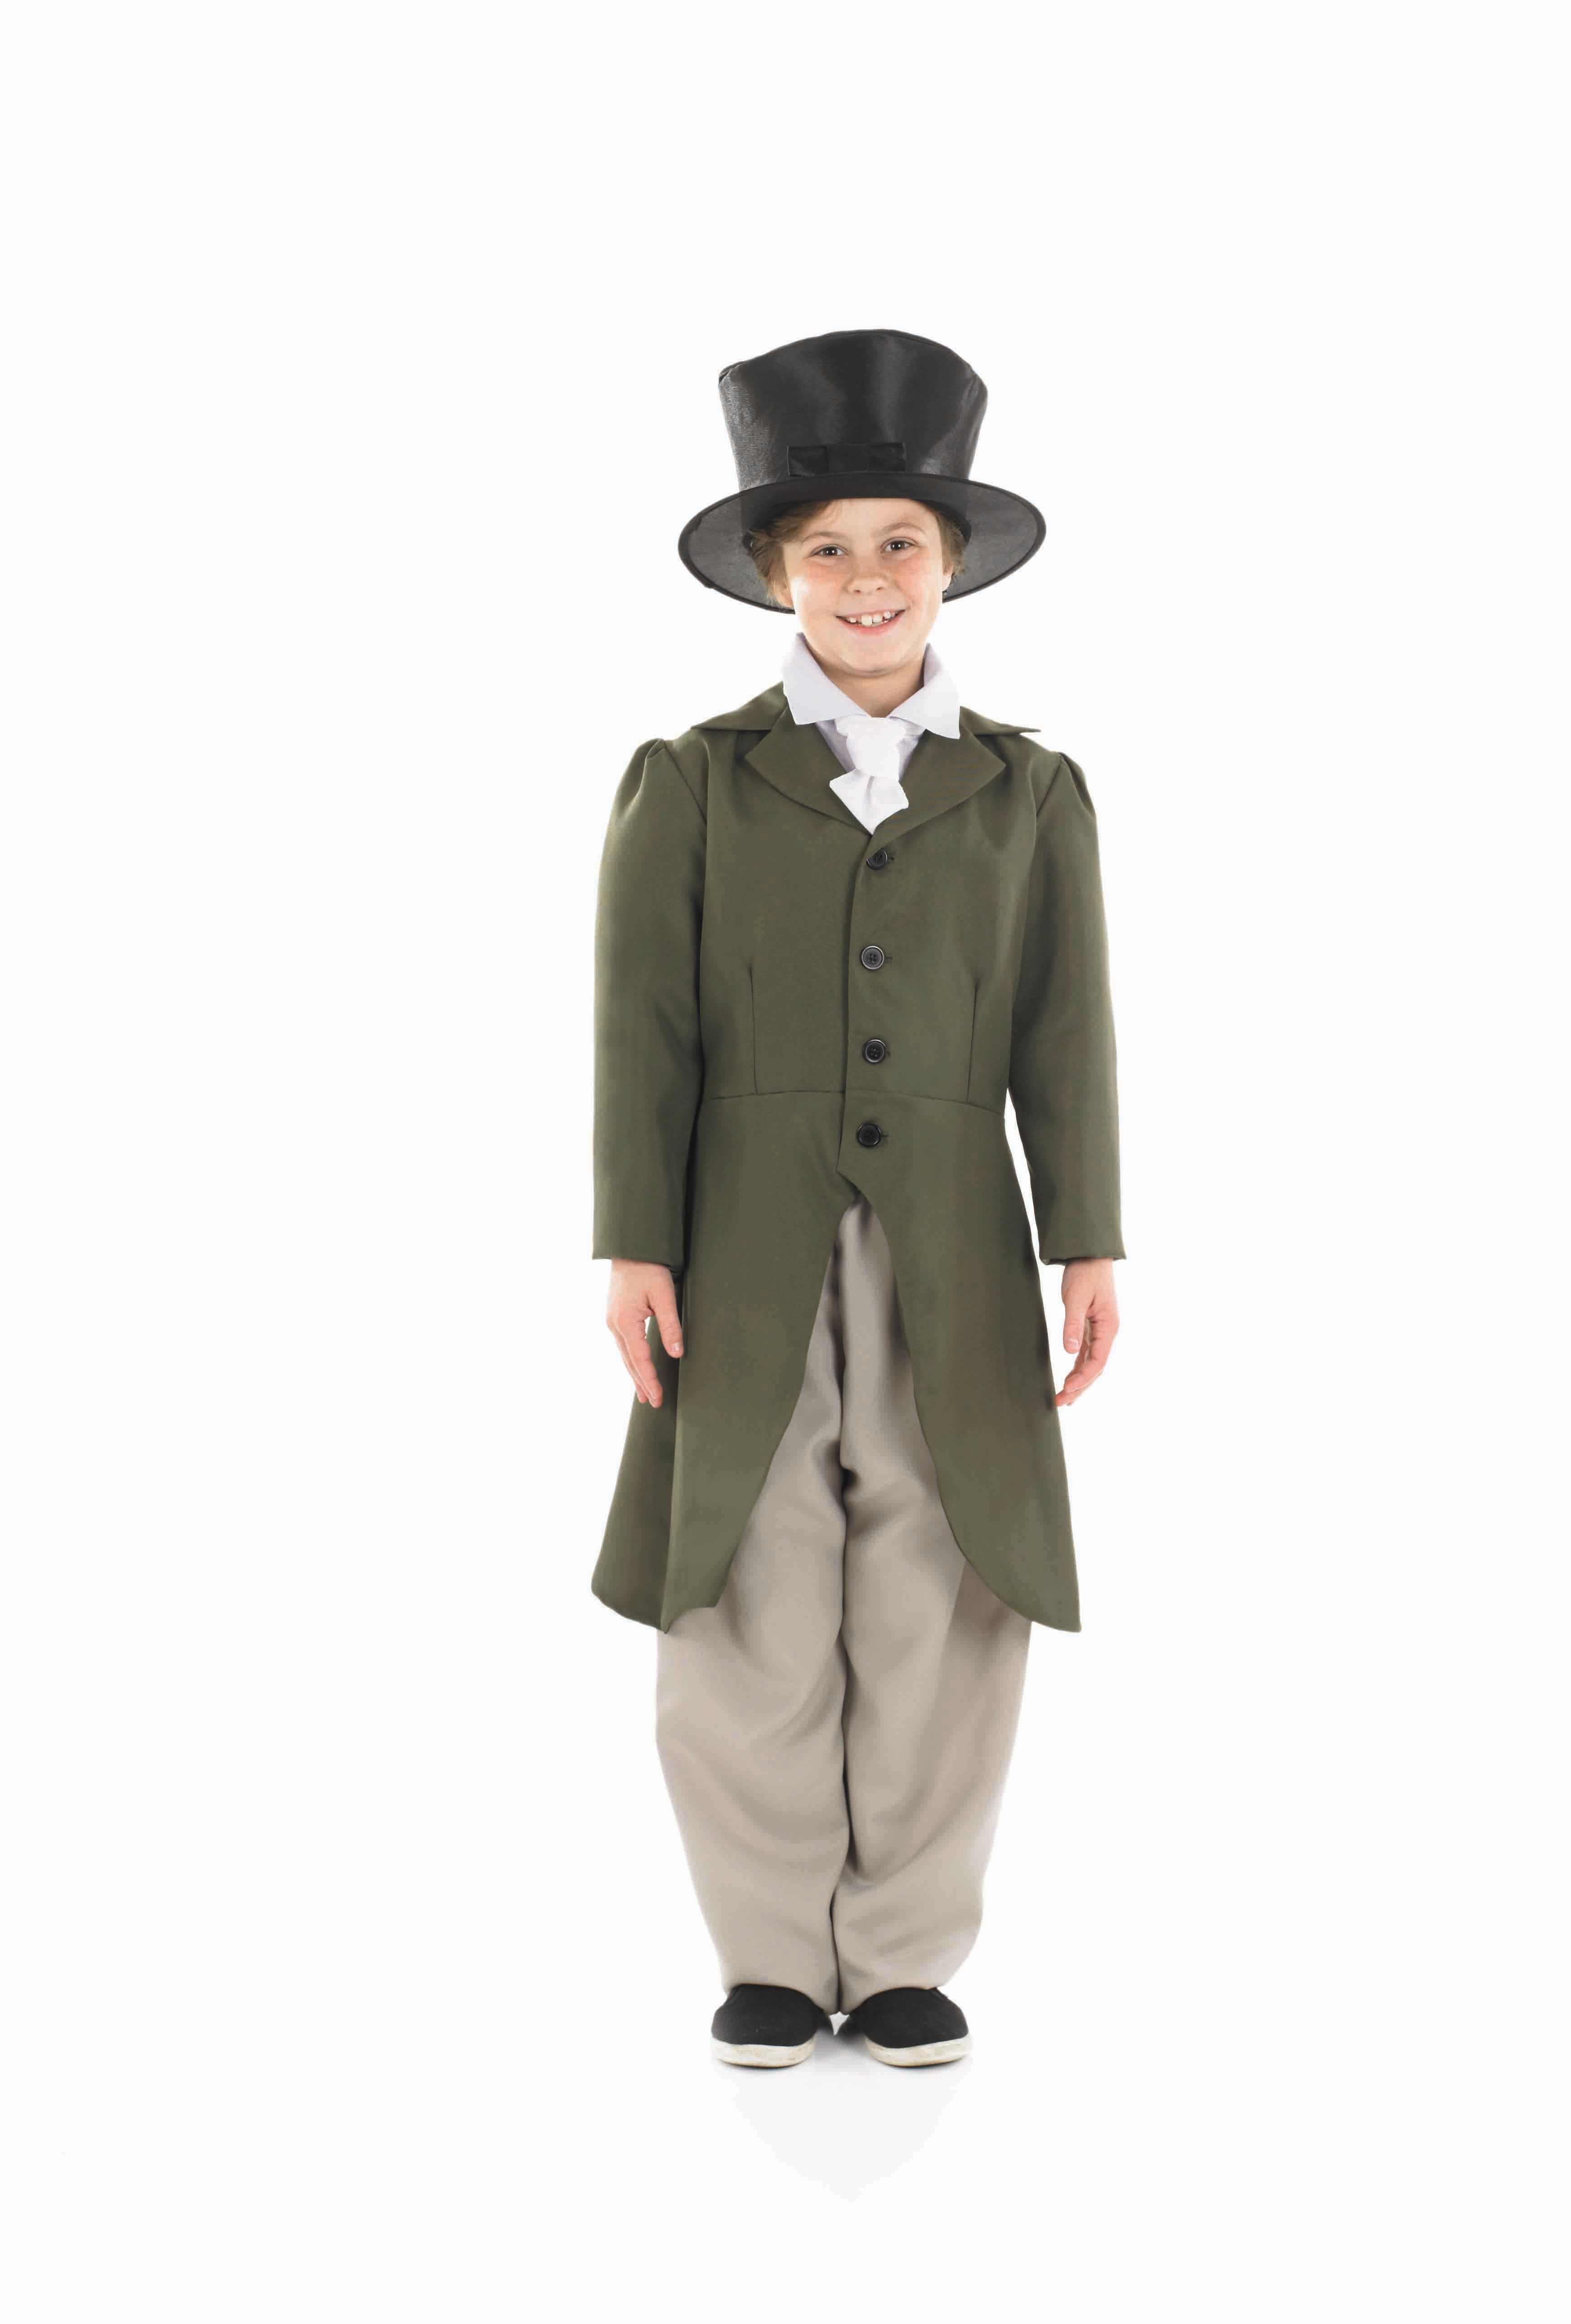 Boys Regency Boy Costume for Historic Book Day Fancy Dress Up Outfits